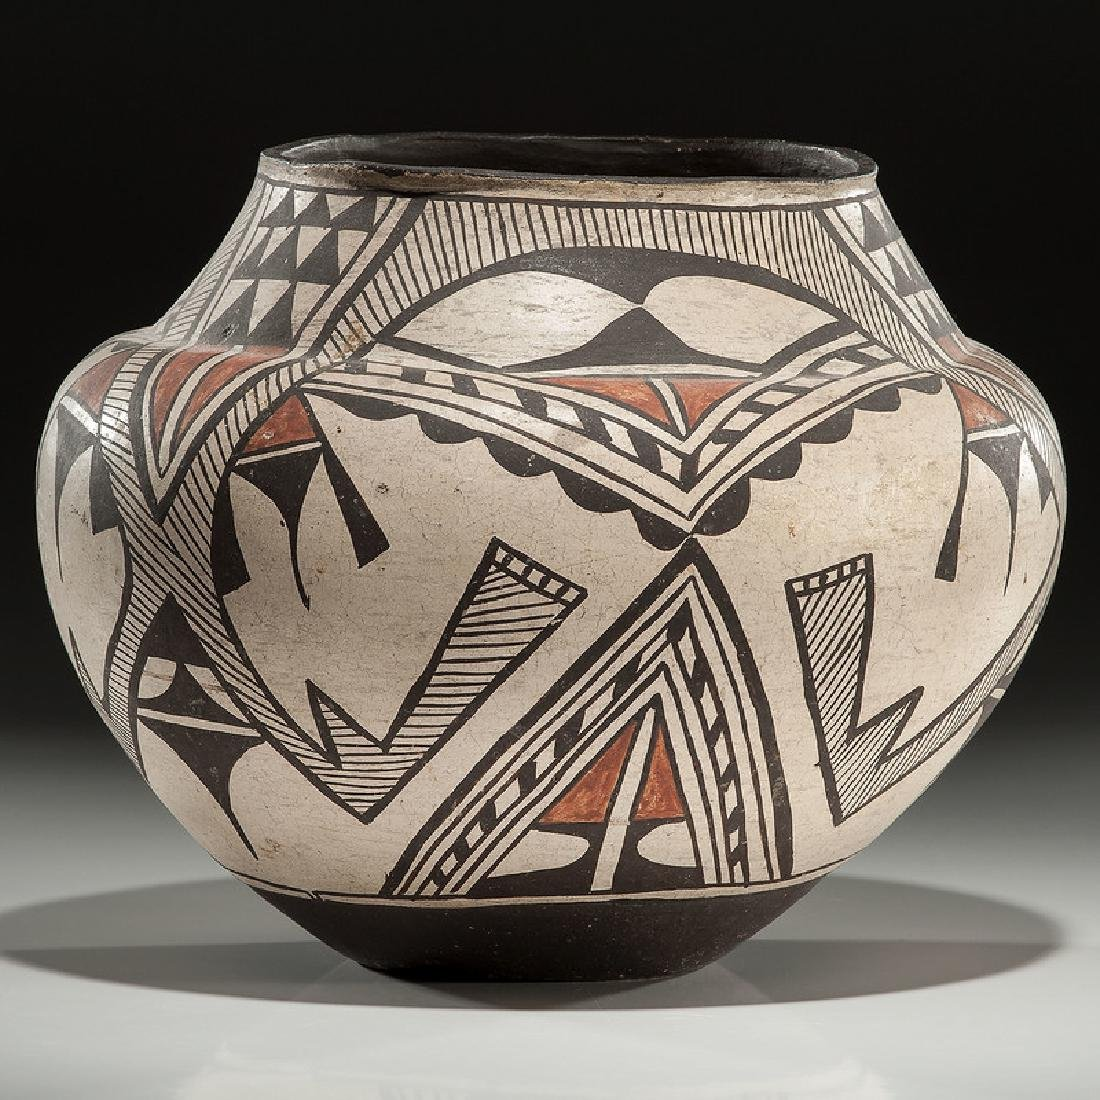 Zuni Polychrome Pottery Olla, From the Collection of